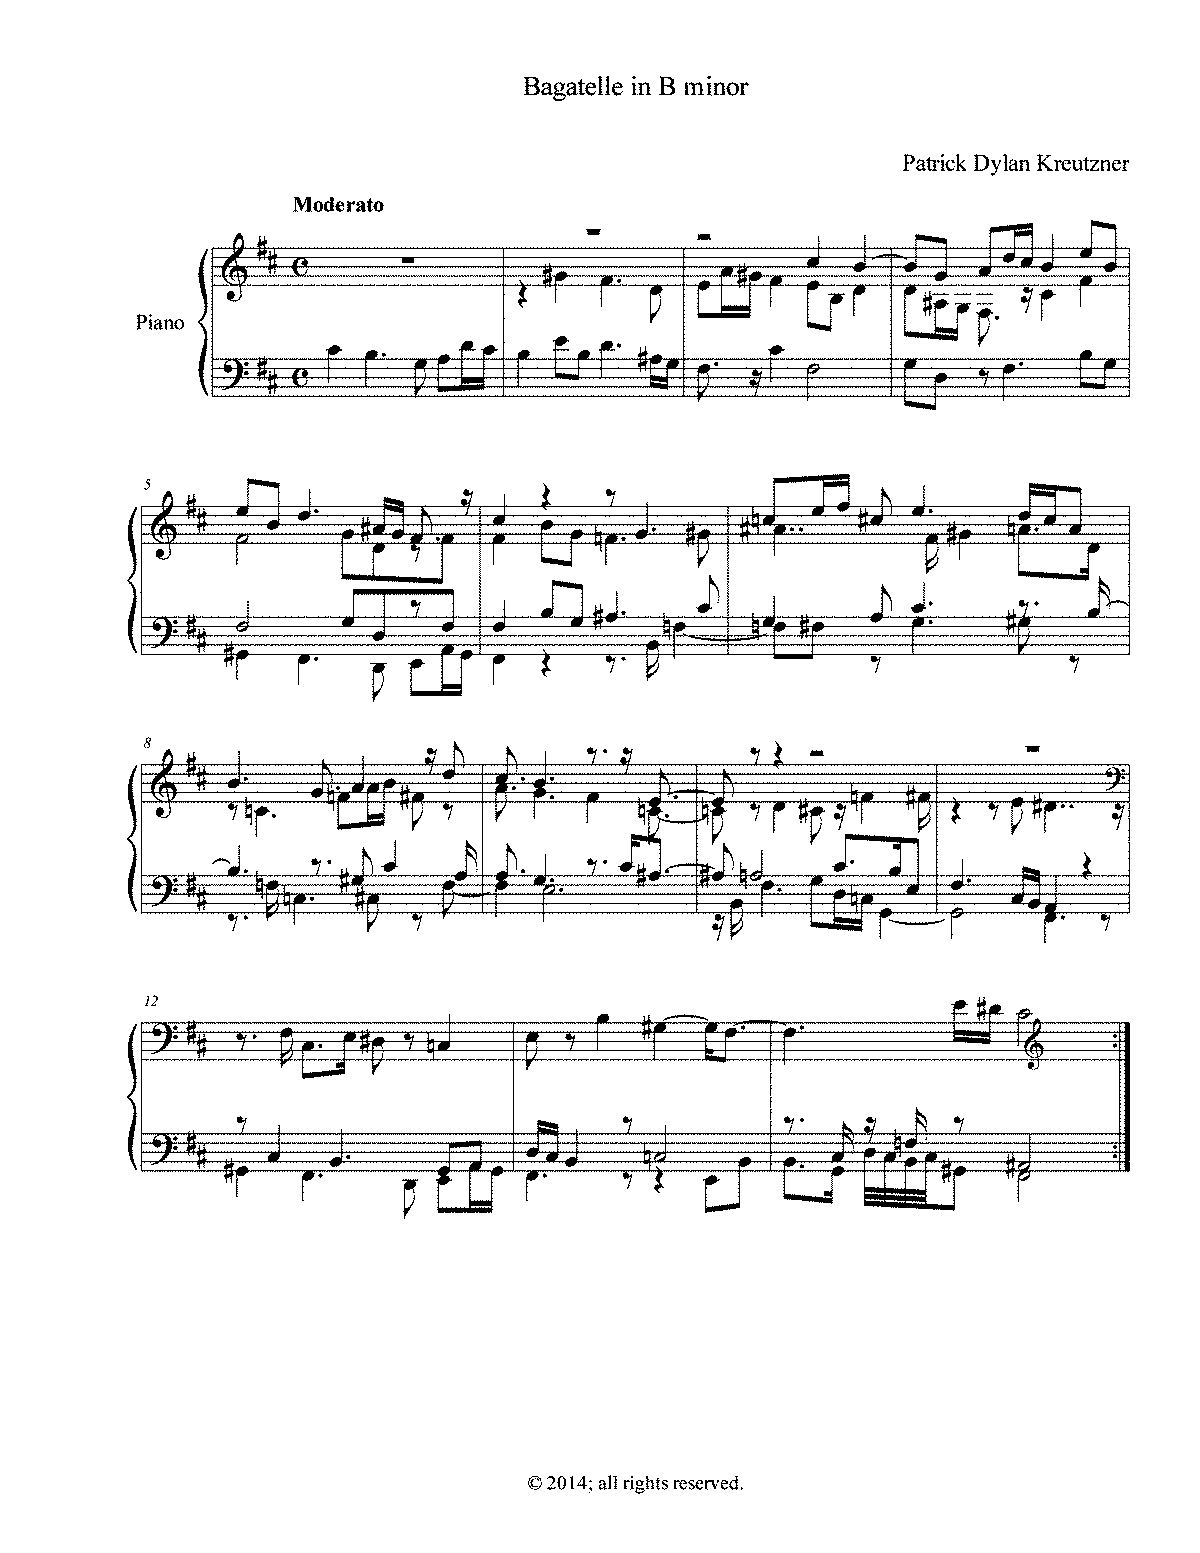 PMLP502845-Bagatelle in B minor by Patrick Dylan Kreutzner.pdf